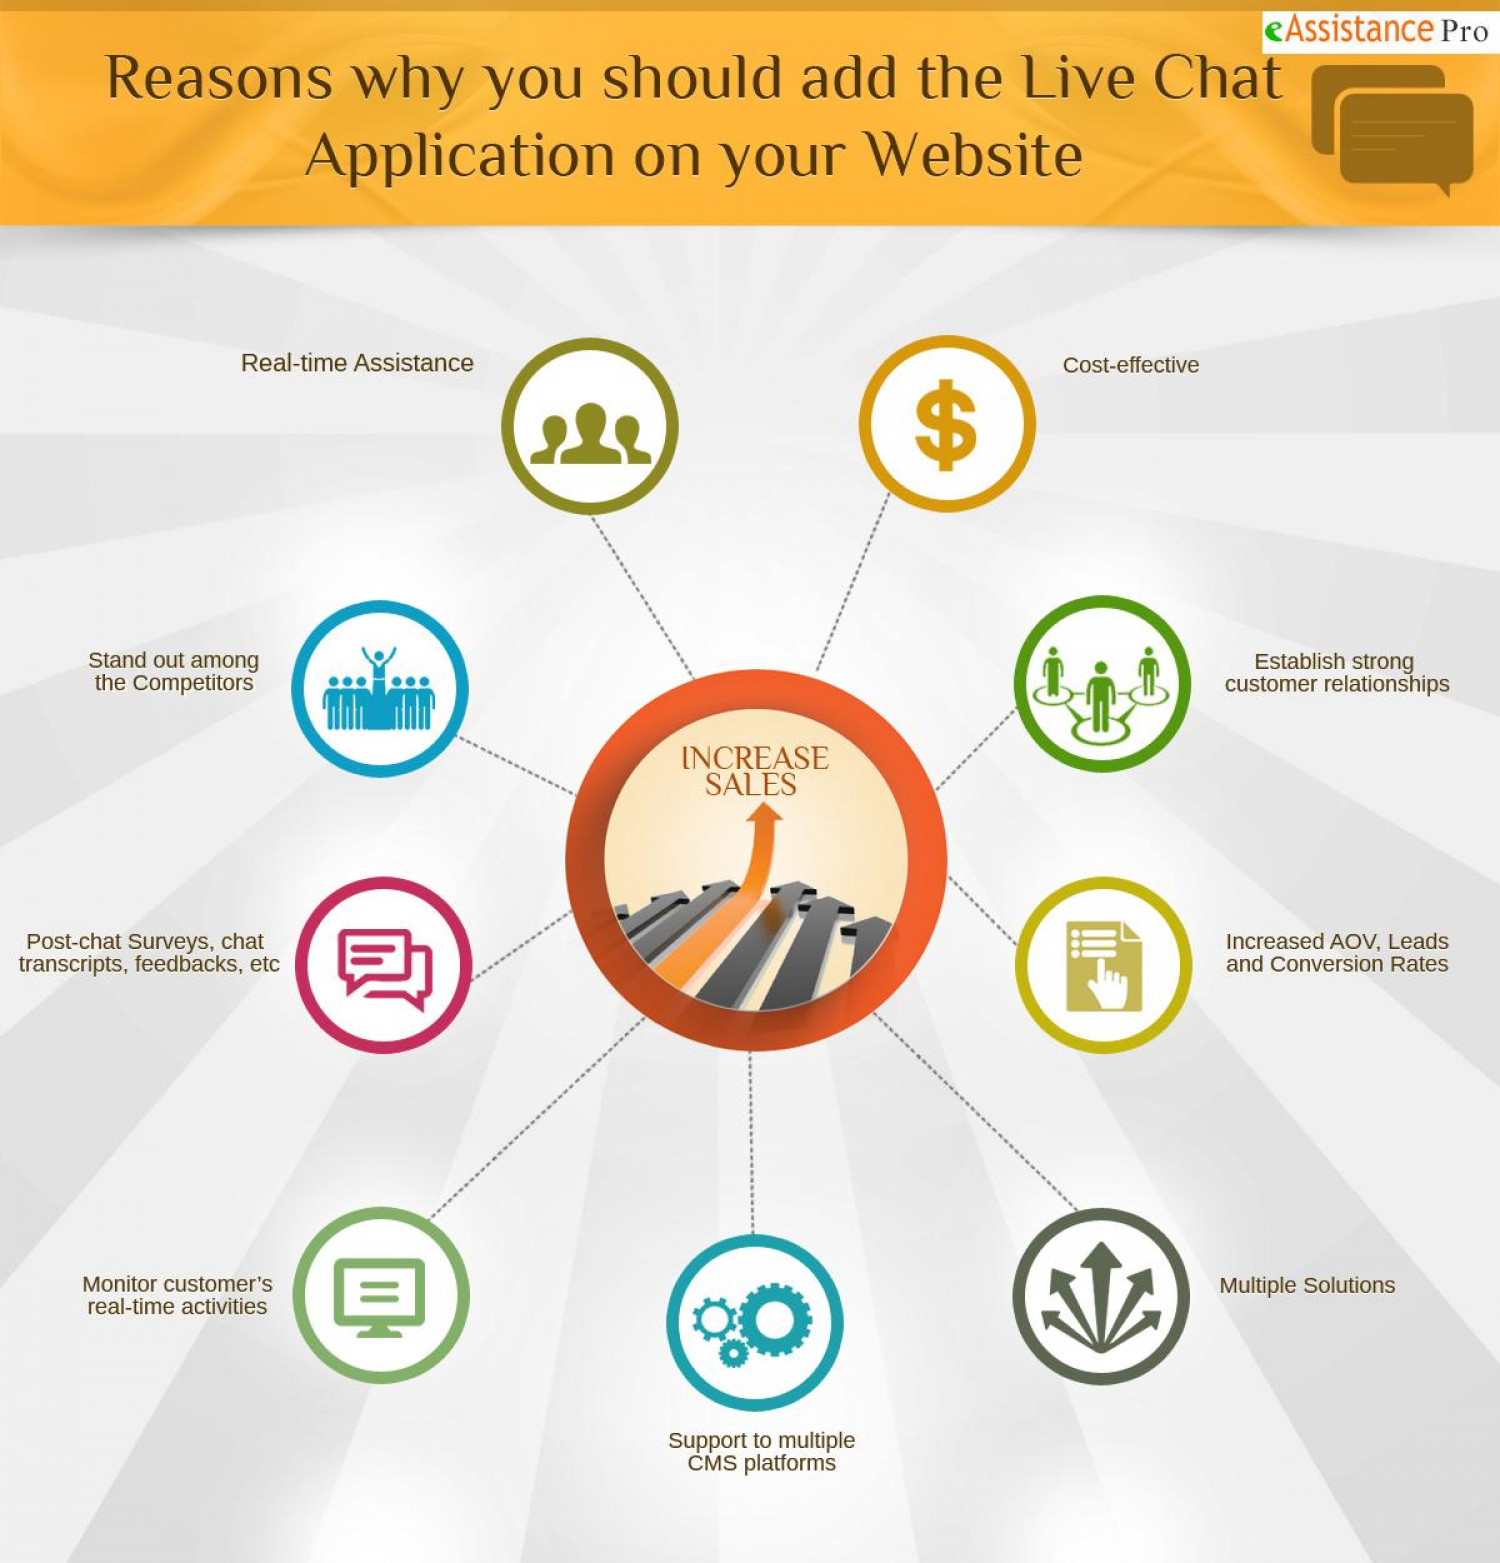 Reasons Why You Should Add The Live Chat Application to Your Website  Infographic